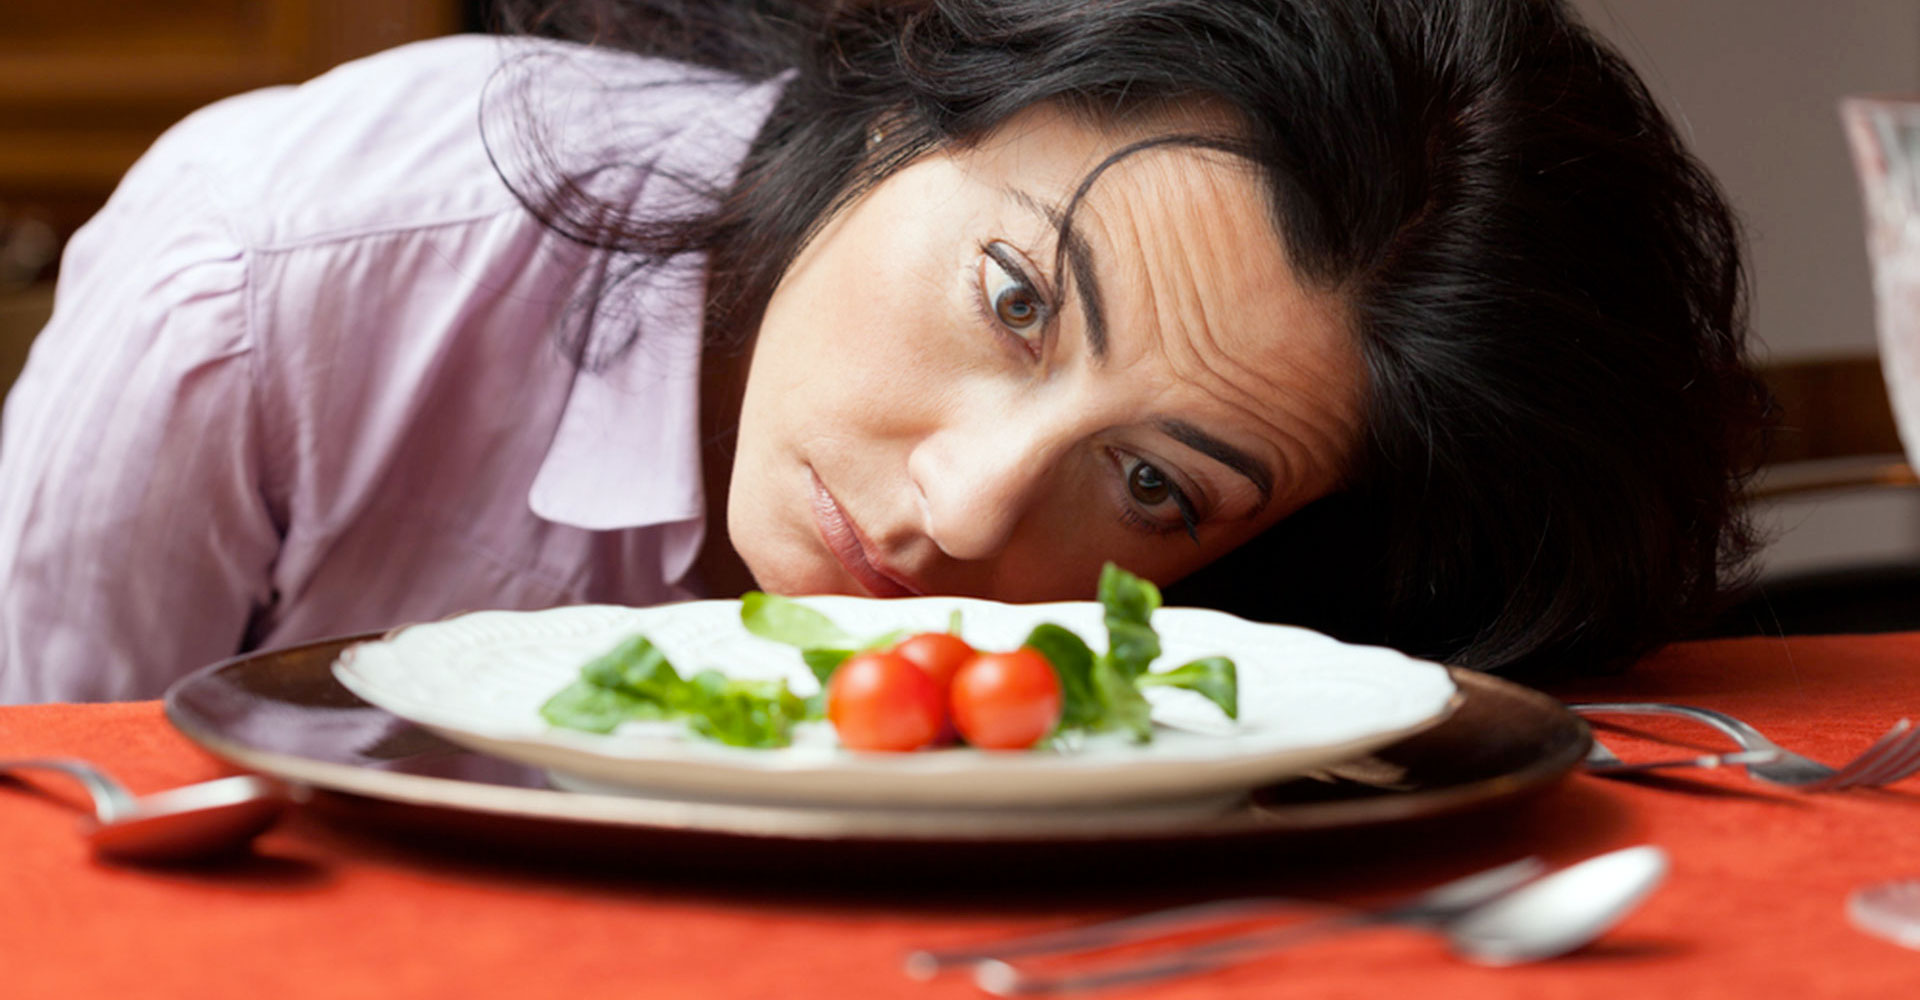 Session 1: Why Diets Don't Work